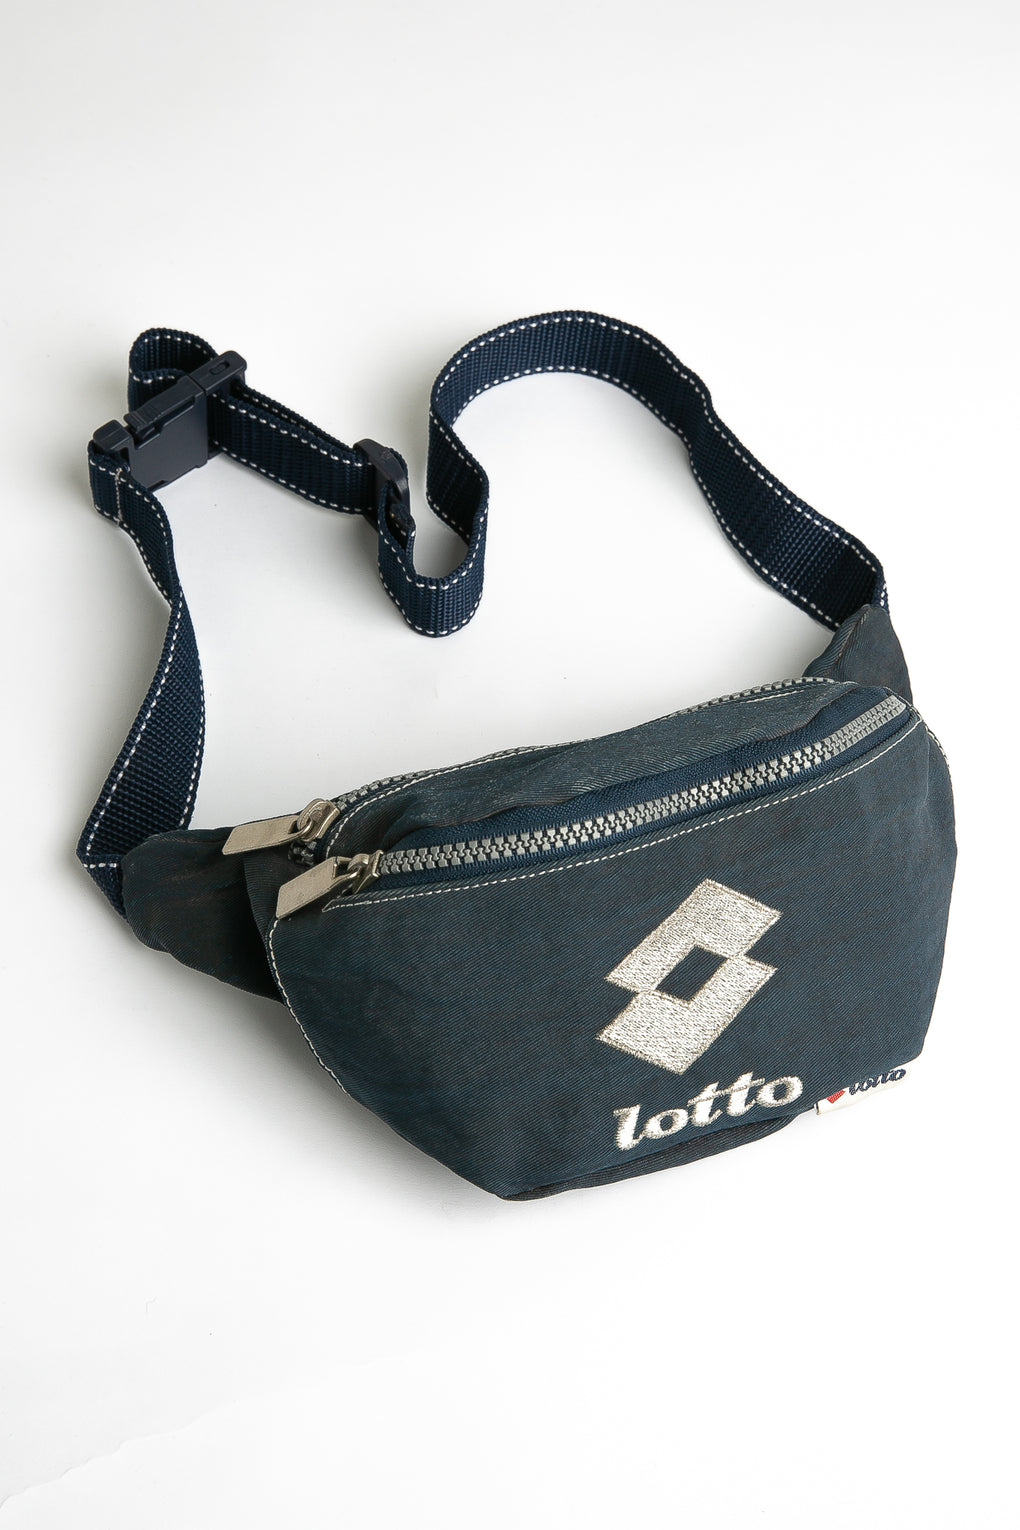 LOTTO SILVER BUMBAG